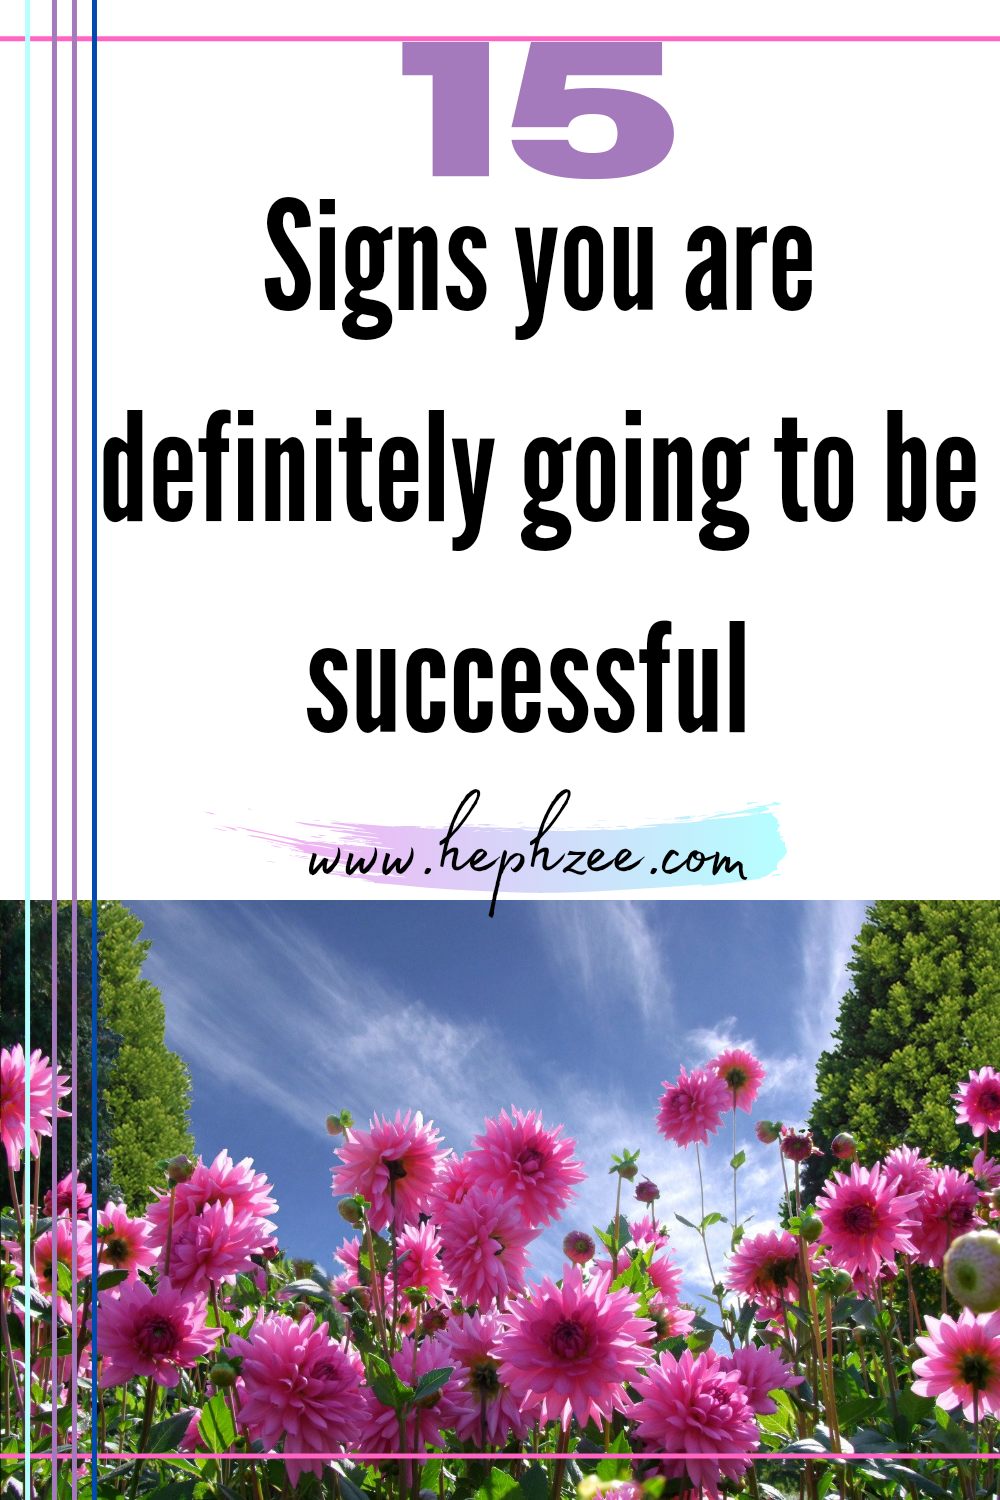 Signs you are going to be successful